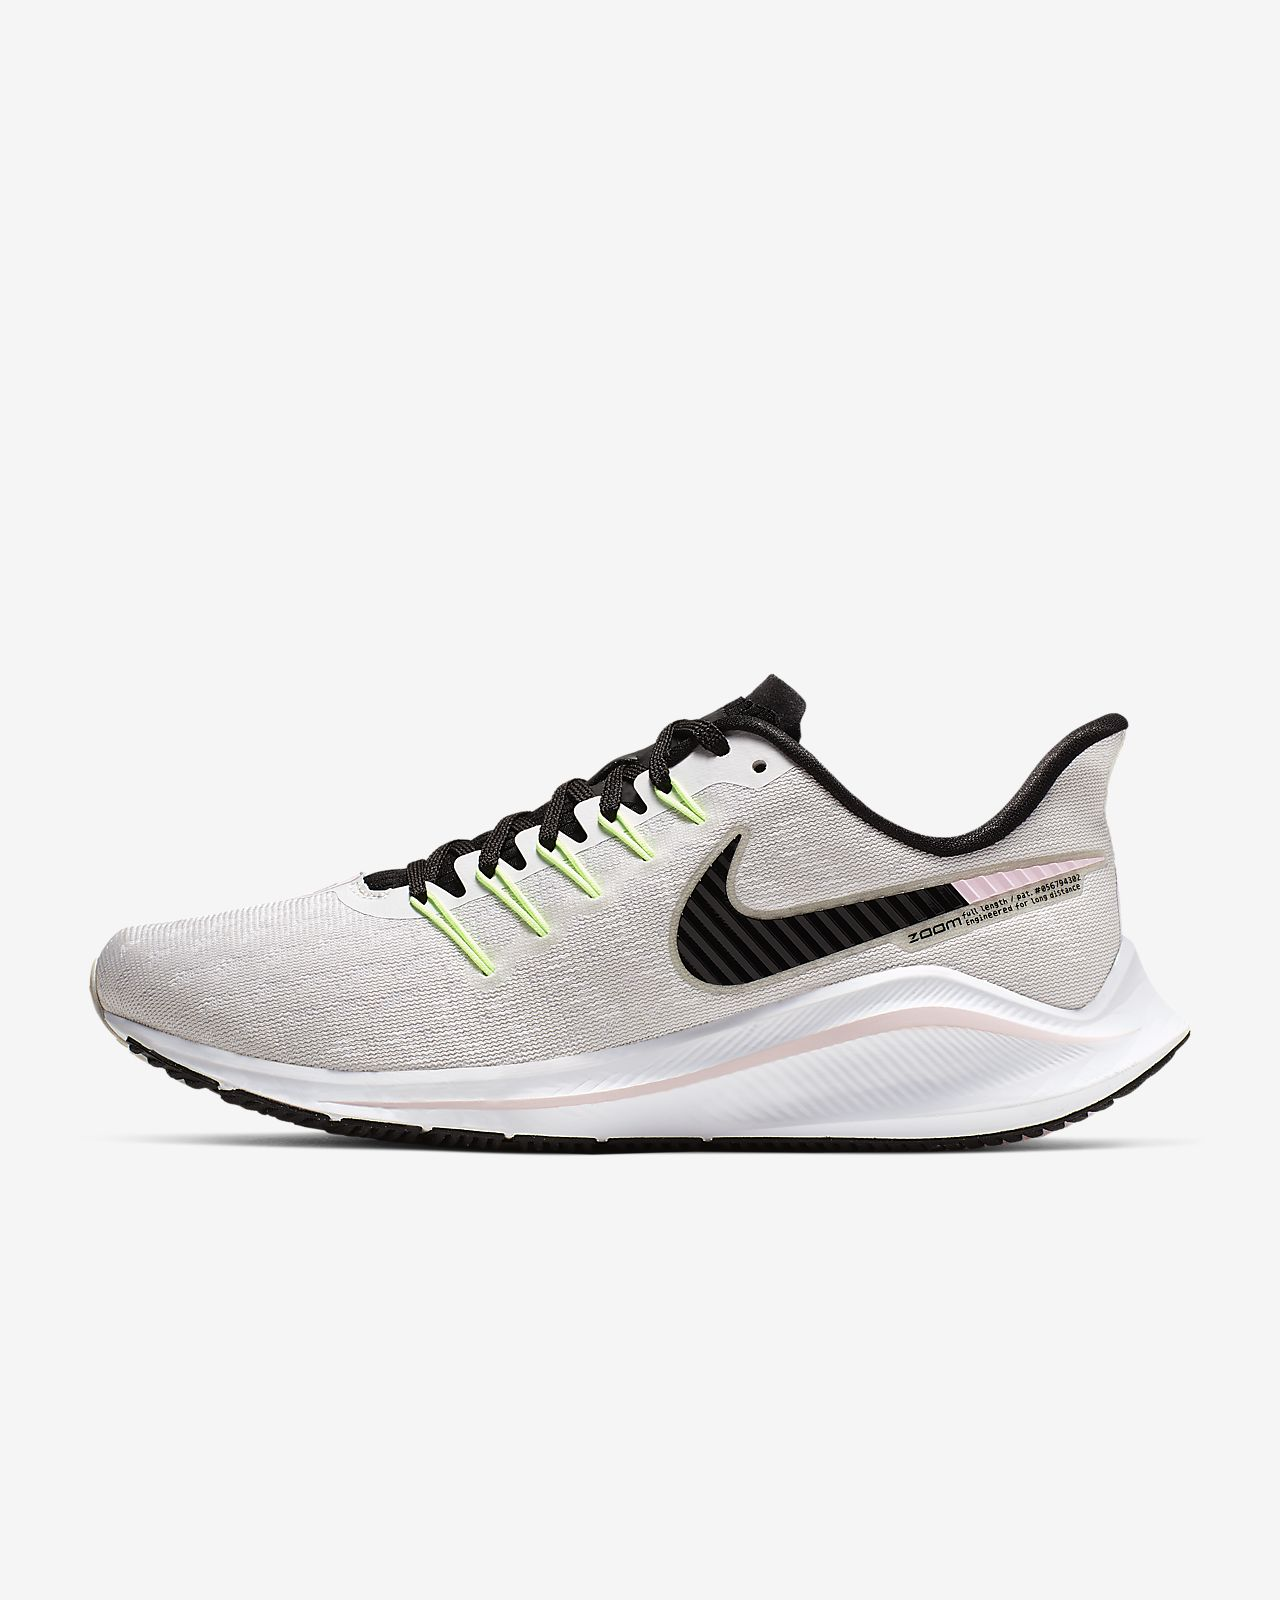 1307e5fdd3c Nike Air Zoom Vomero 14 Women s Running Shoe. Nike.com BE